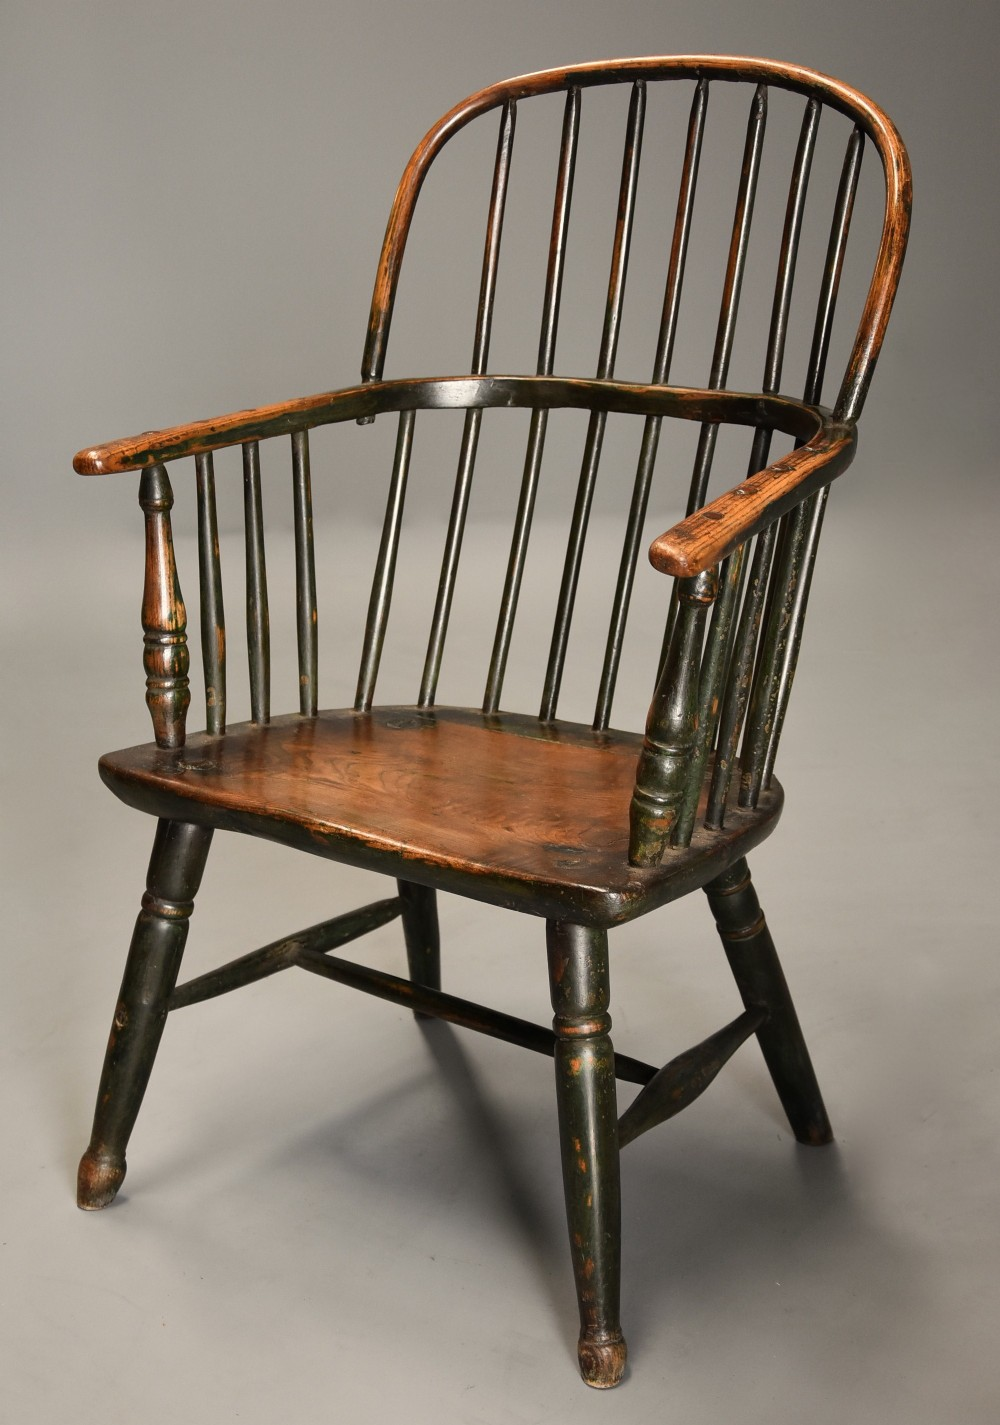 superb early 19thc west country ash elm hoop back windsor chair with original green paint finish